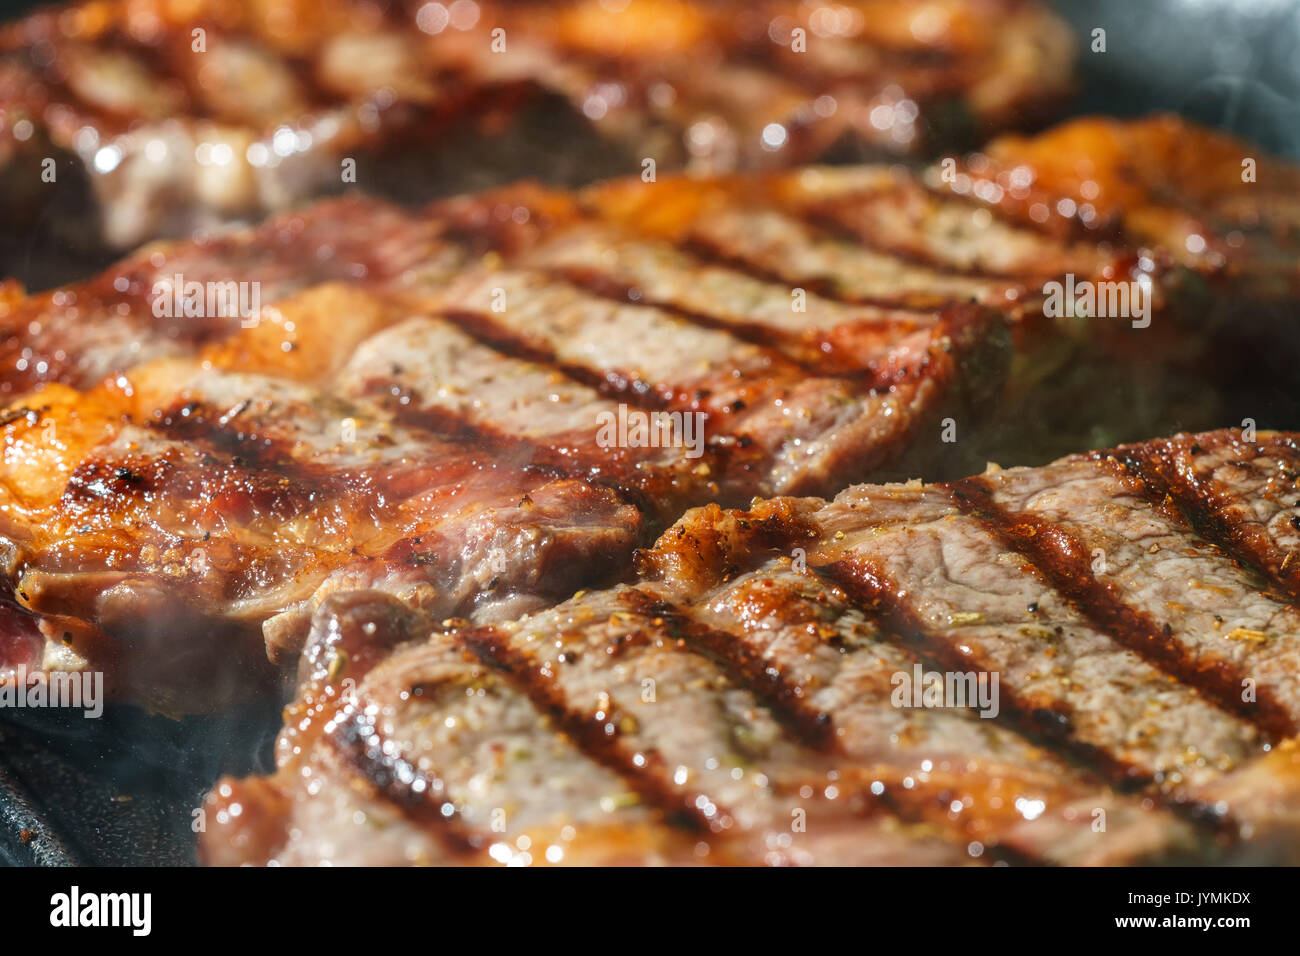 Raw Ribeye Steak with Herbs and Spices, frying on grill pan. - Stock Image